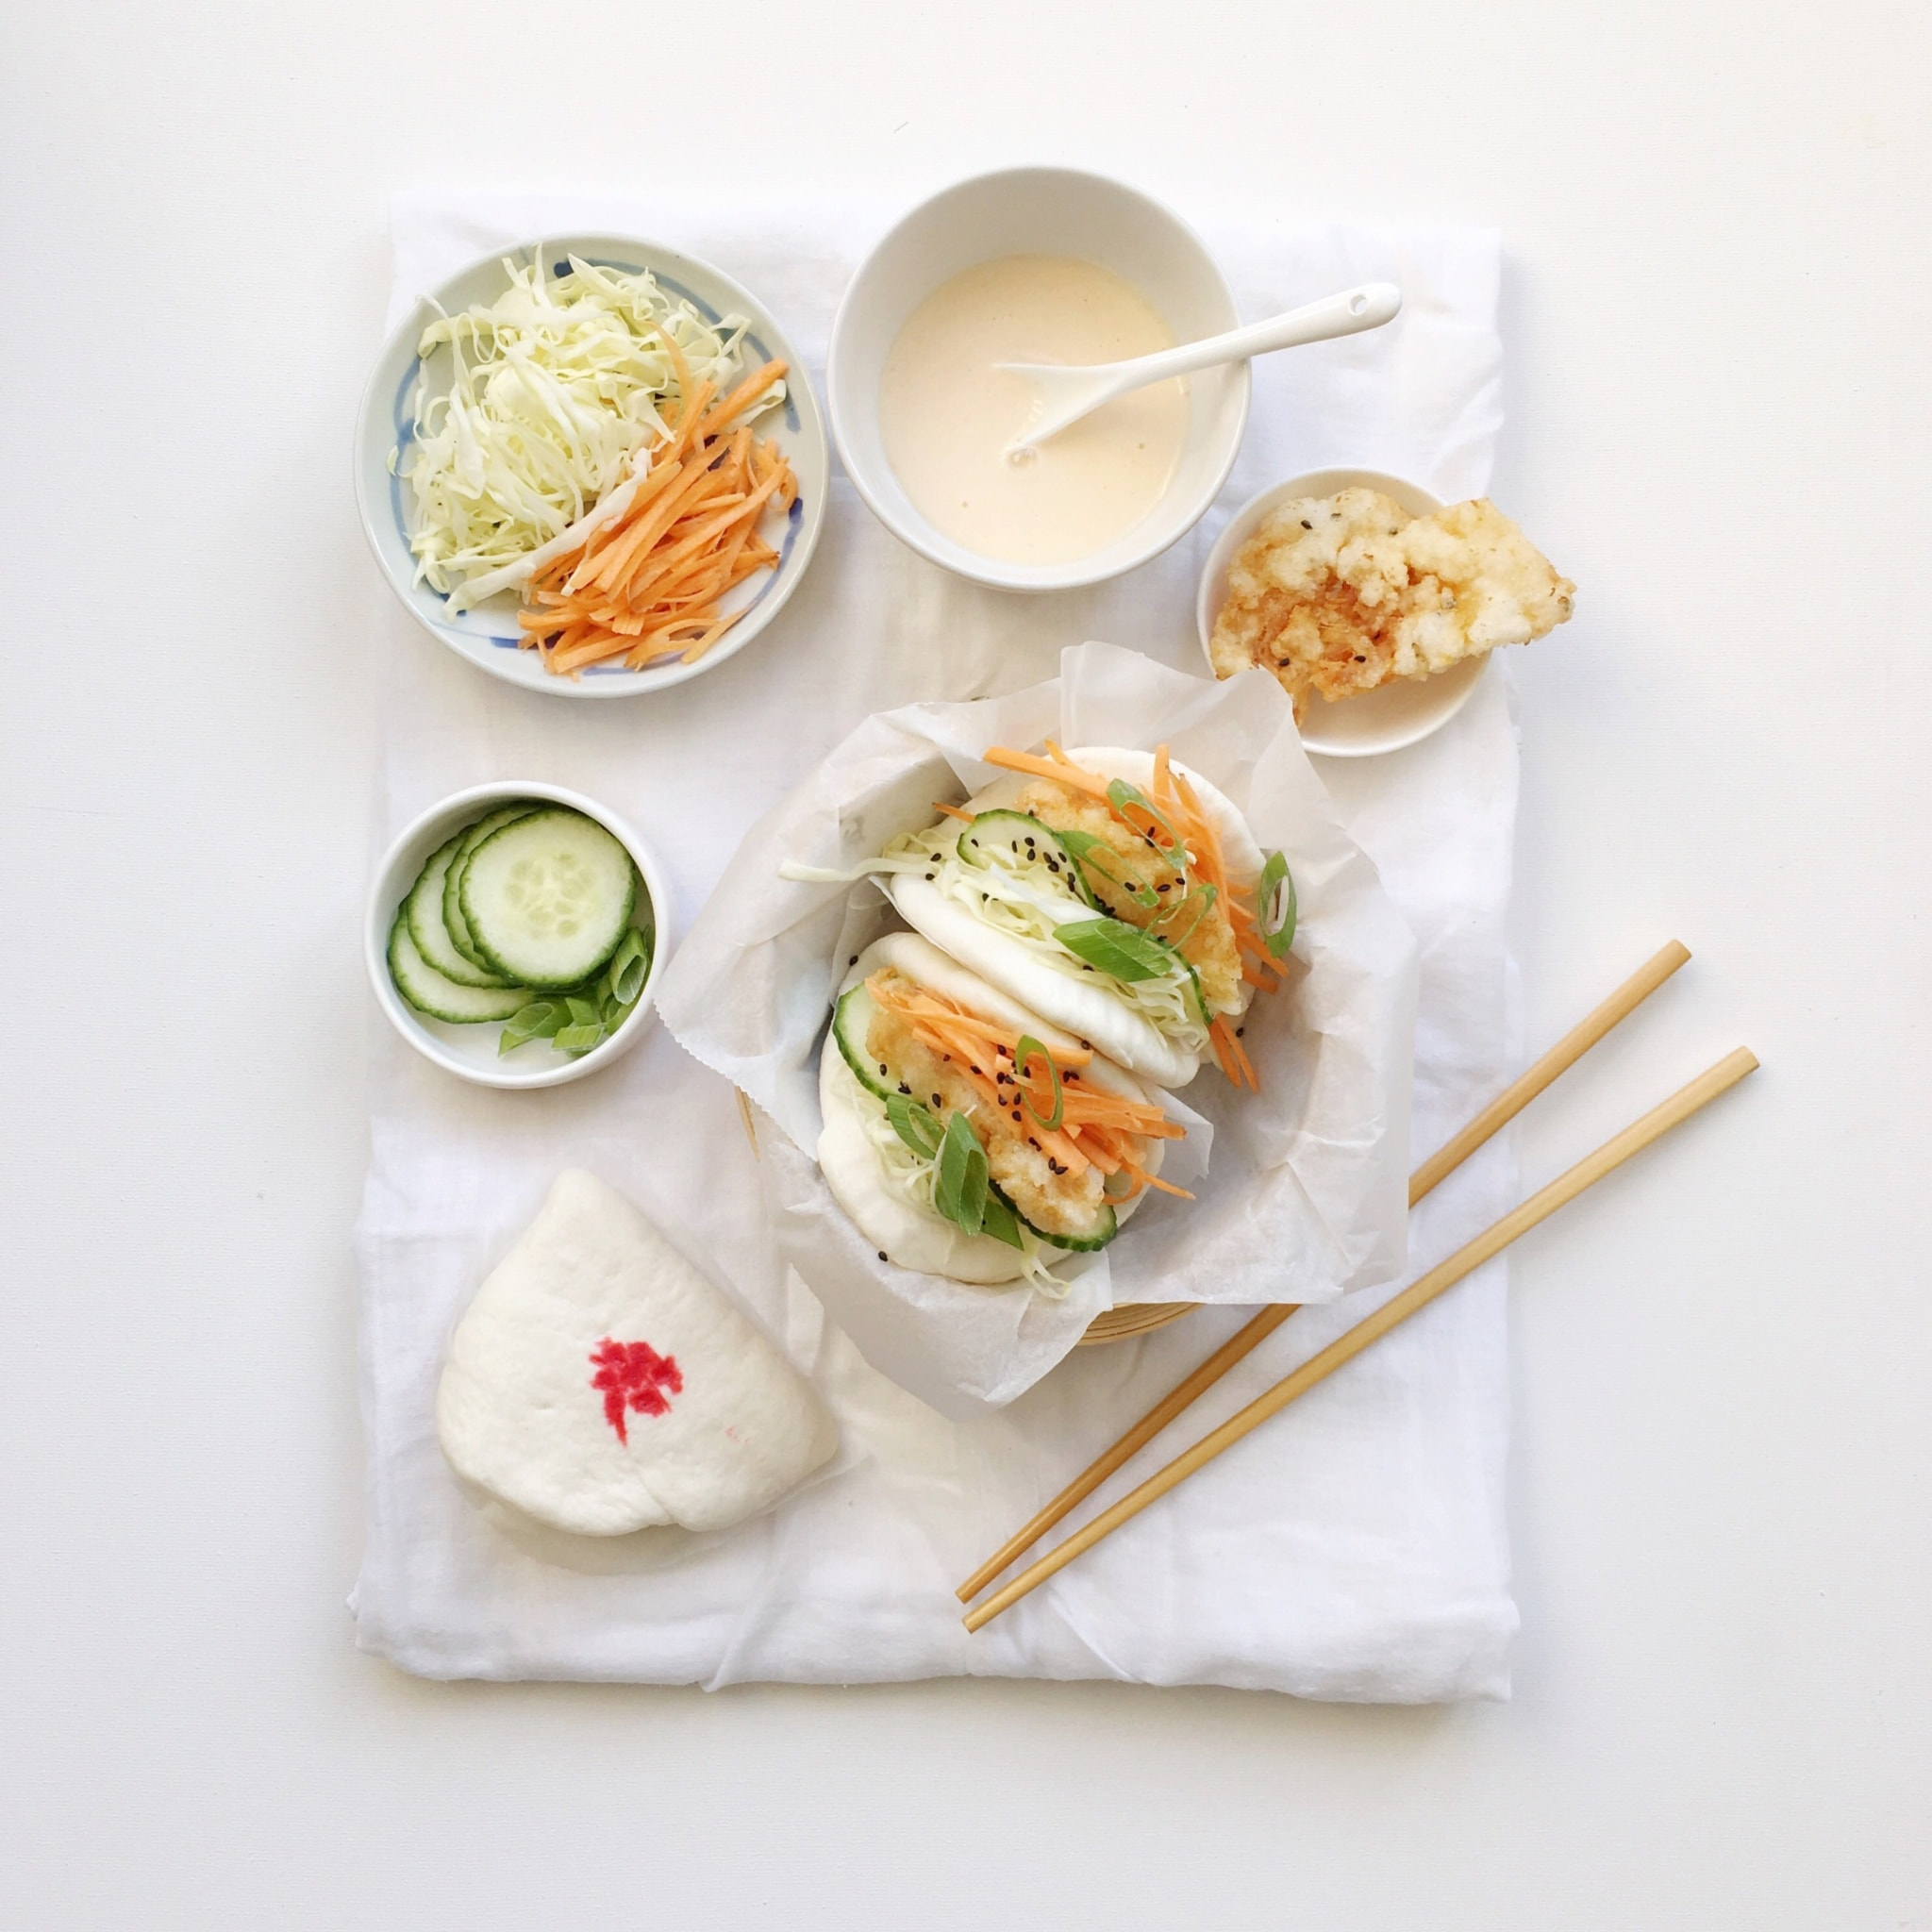 image - Recept Gua Bao - Food blog Challenge #3